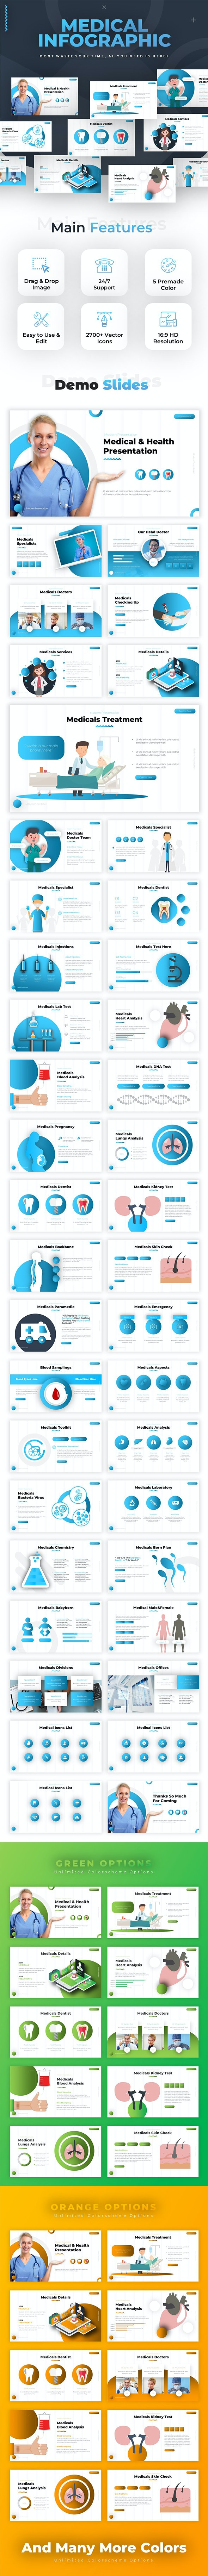 Medical Infographic Powerpoint - PowerPoint Templates Presentation Templates